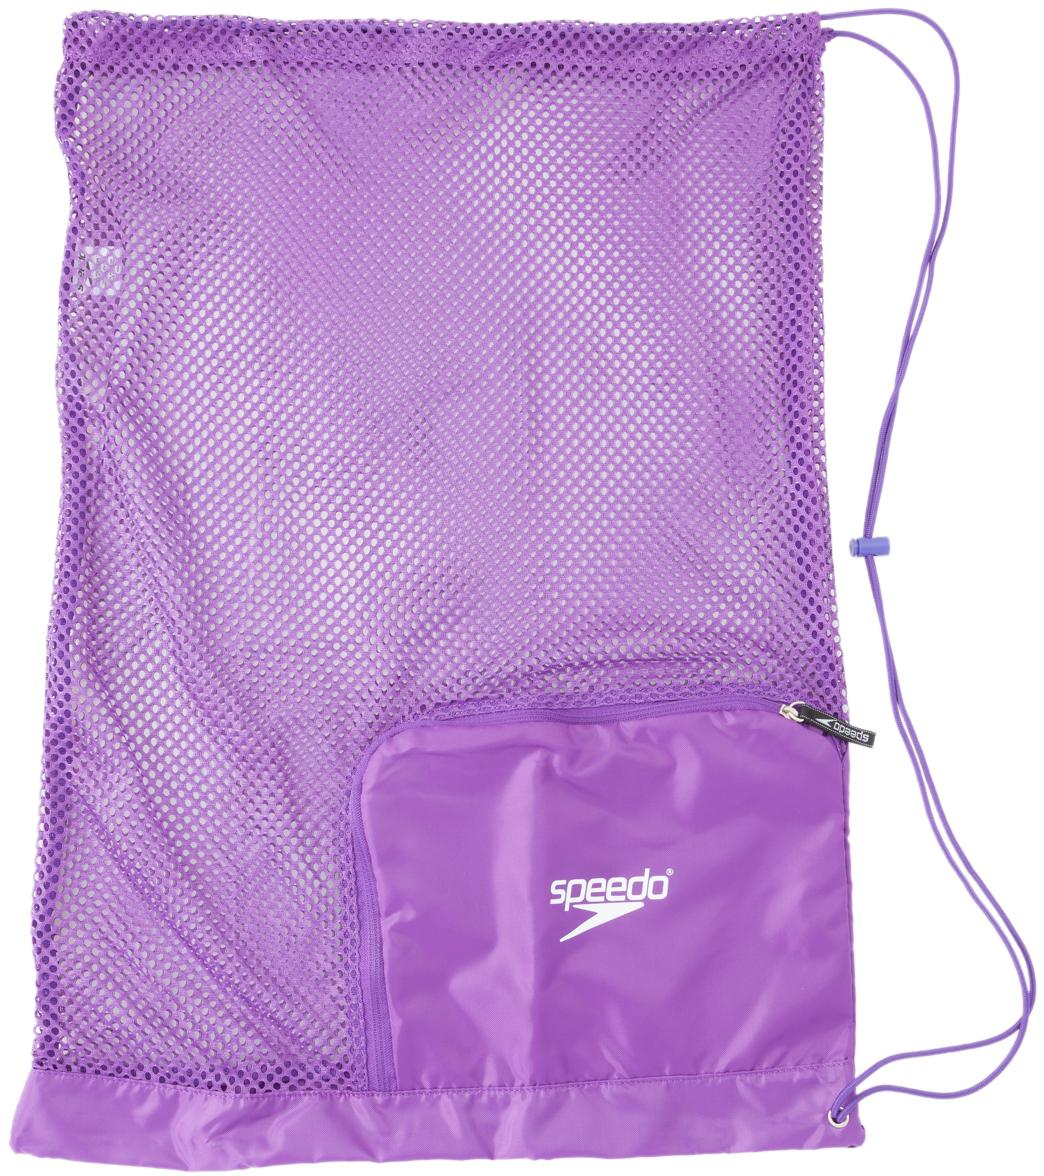 Speedo Ventilator Mesh Bag at SwimOutlet.com